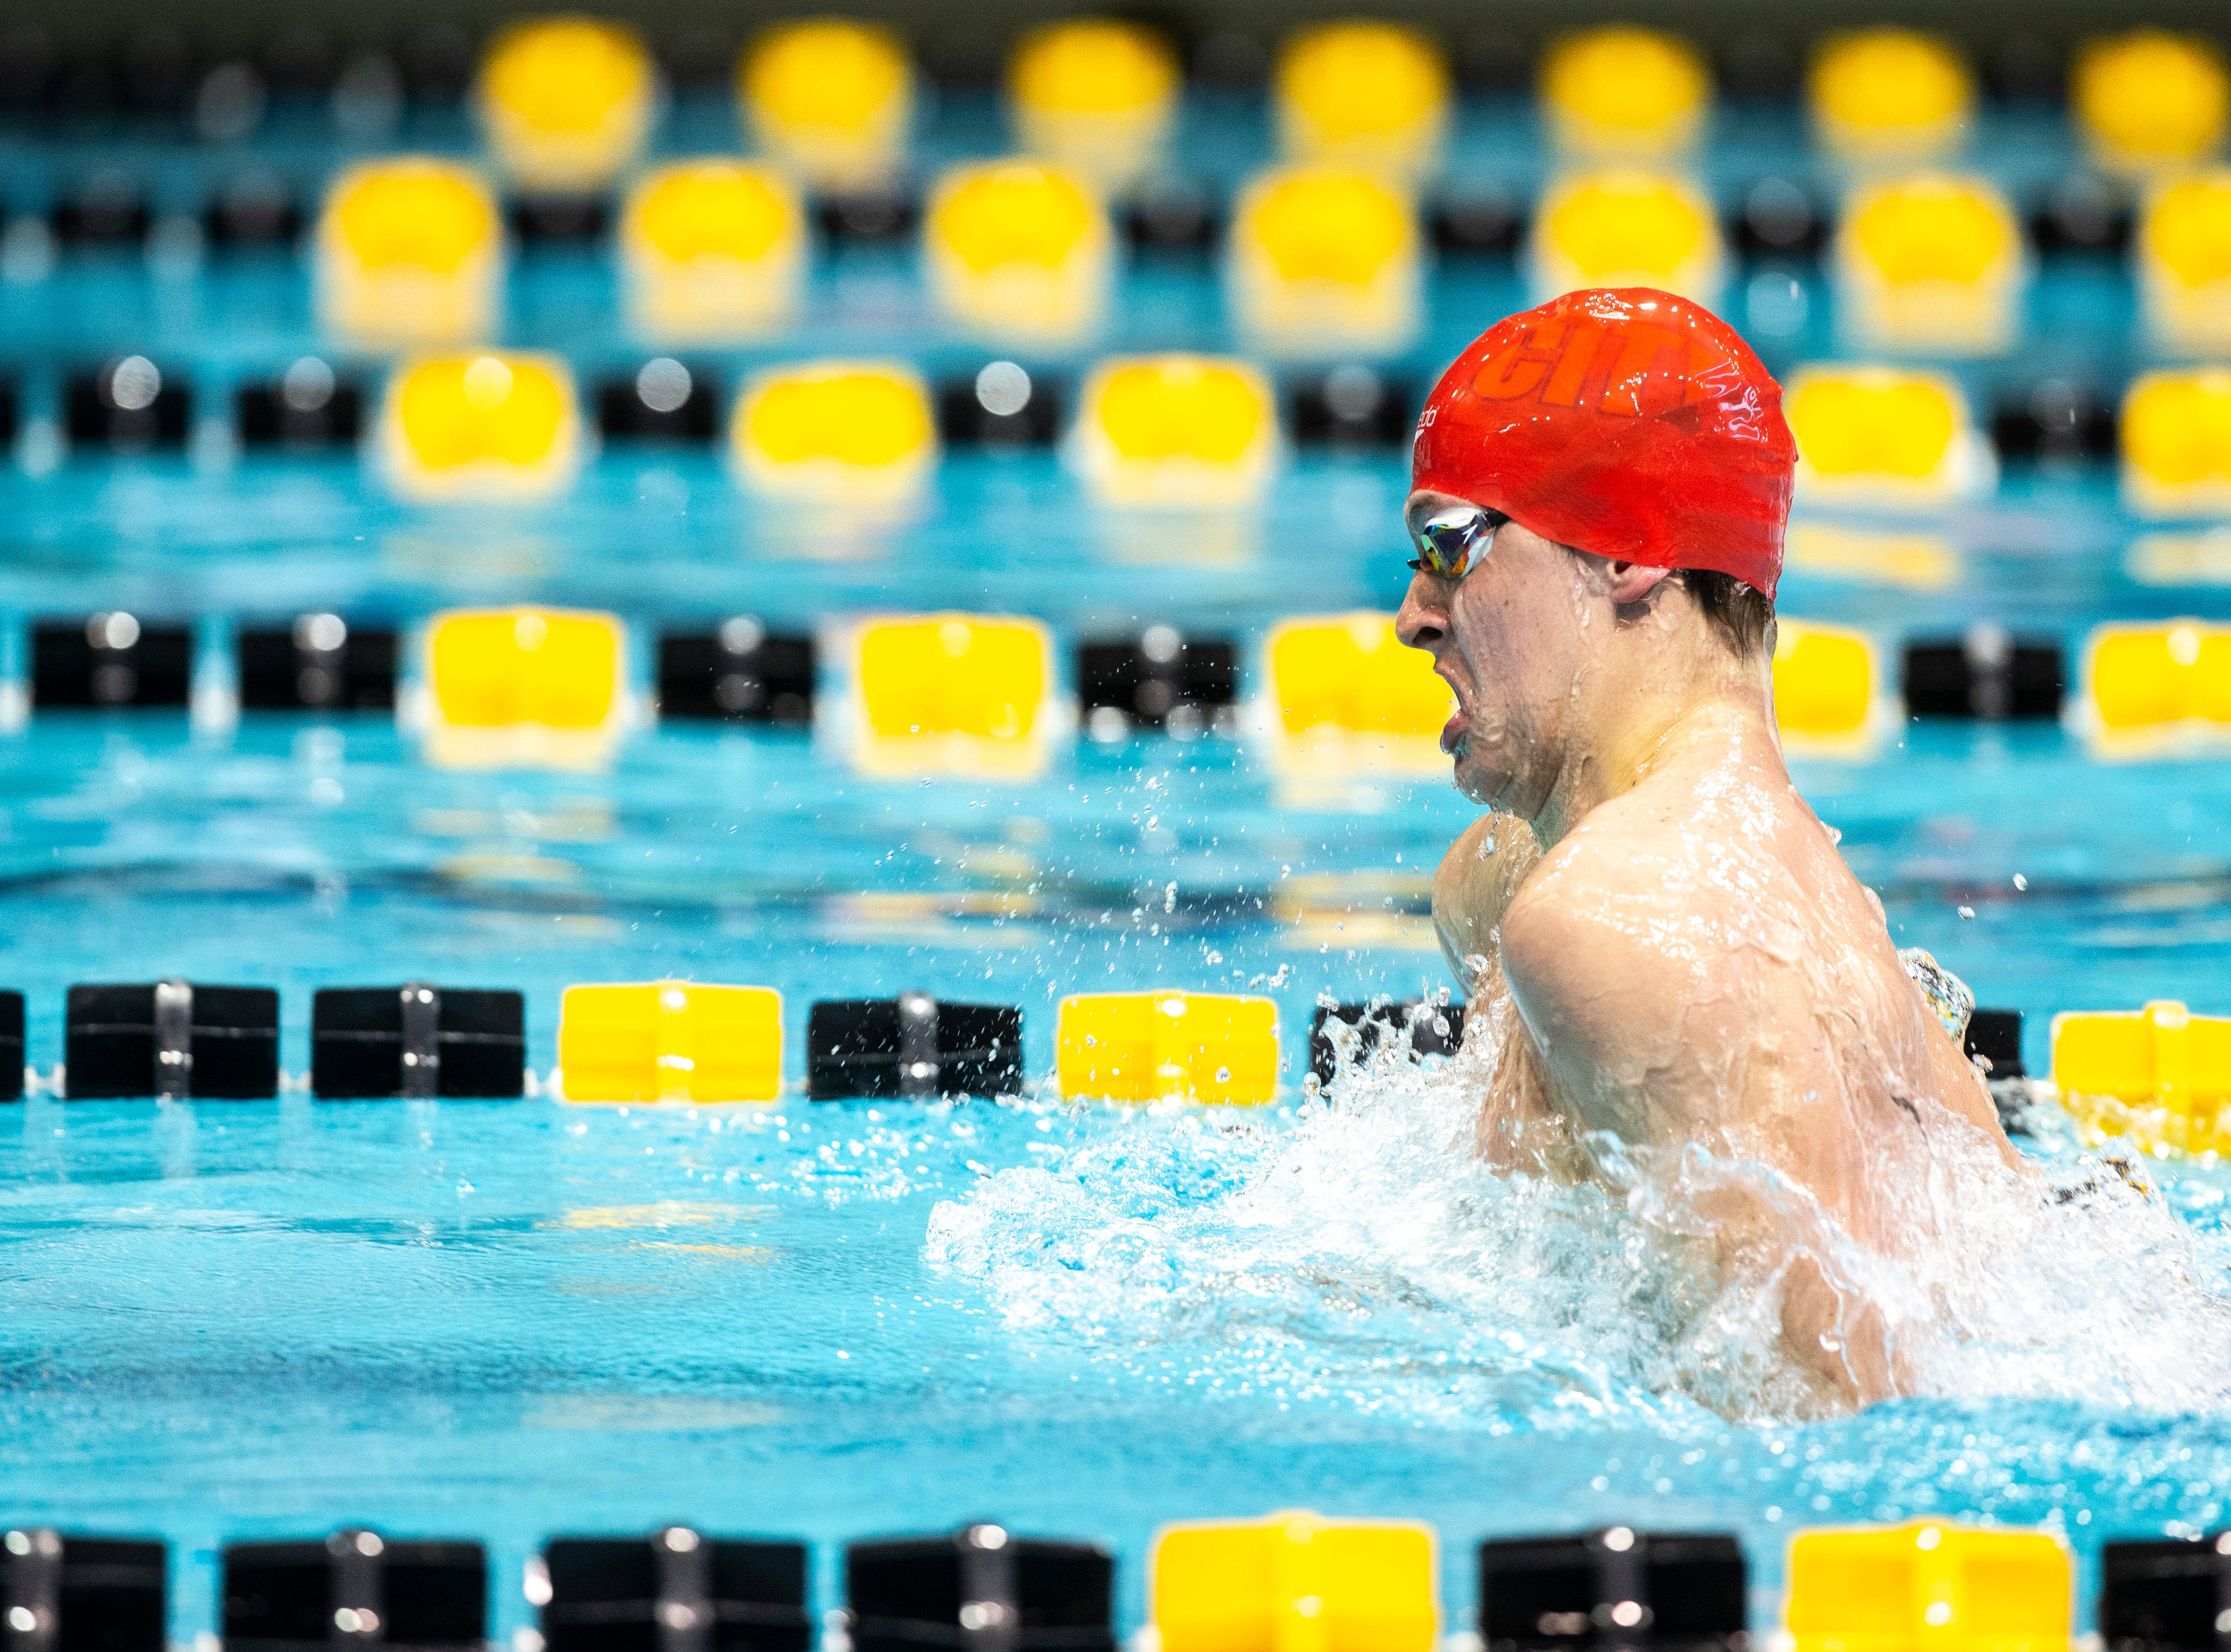 Iowa City High junior Forrest Frazier competes in the third heat of 100 yard breaststroke during the Iowa boys' state swimming regional championship meet on Saturday, Feb. 9, 2019 at Campus Recreation and Wellness Center on the University of Iowa campus in Iowa City, Iowa. Frazier finished first overall, with a time of 55.17.